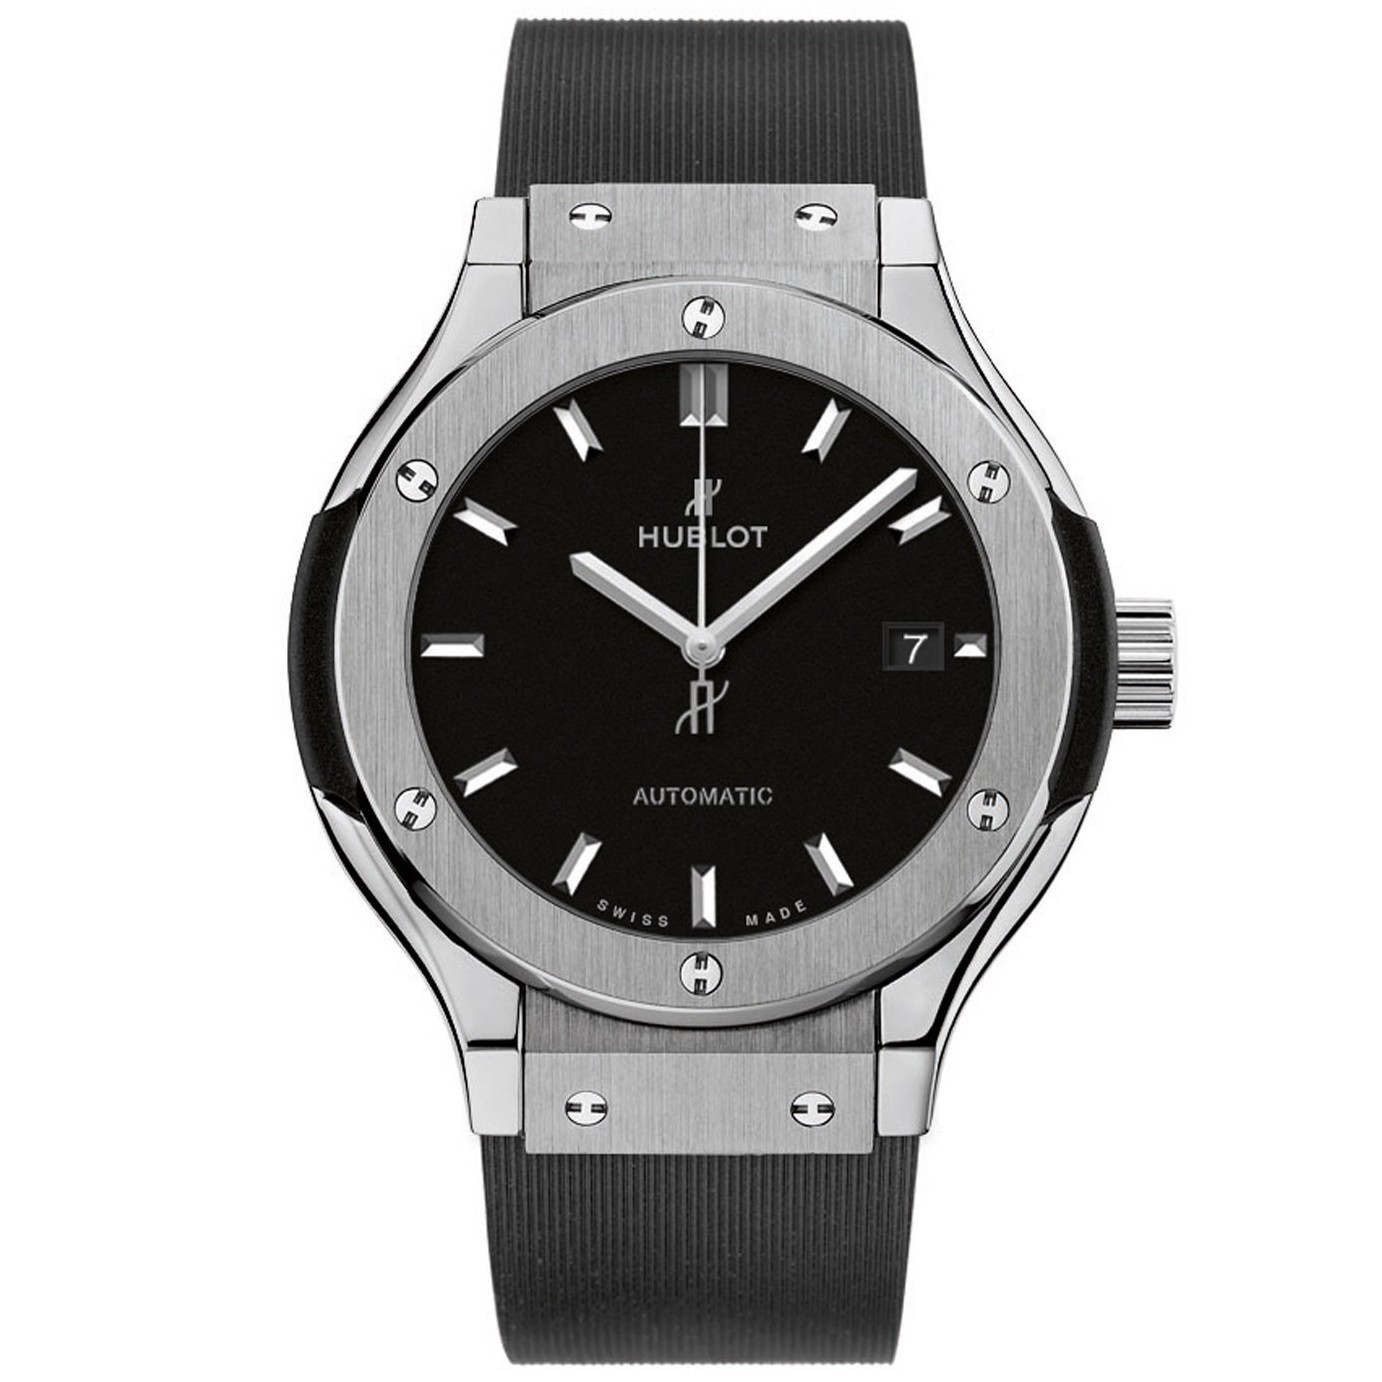 Hublot Classic Fusion Automatic 33mm in Titanium